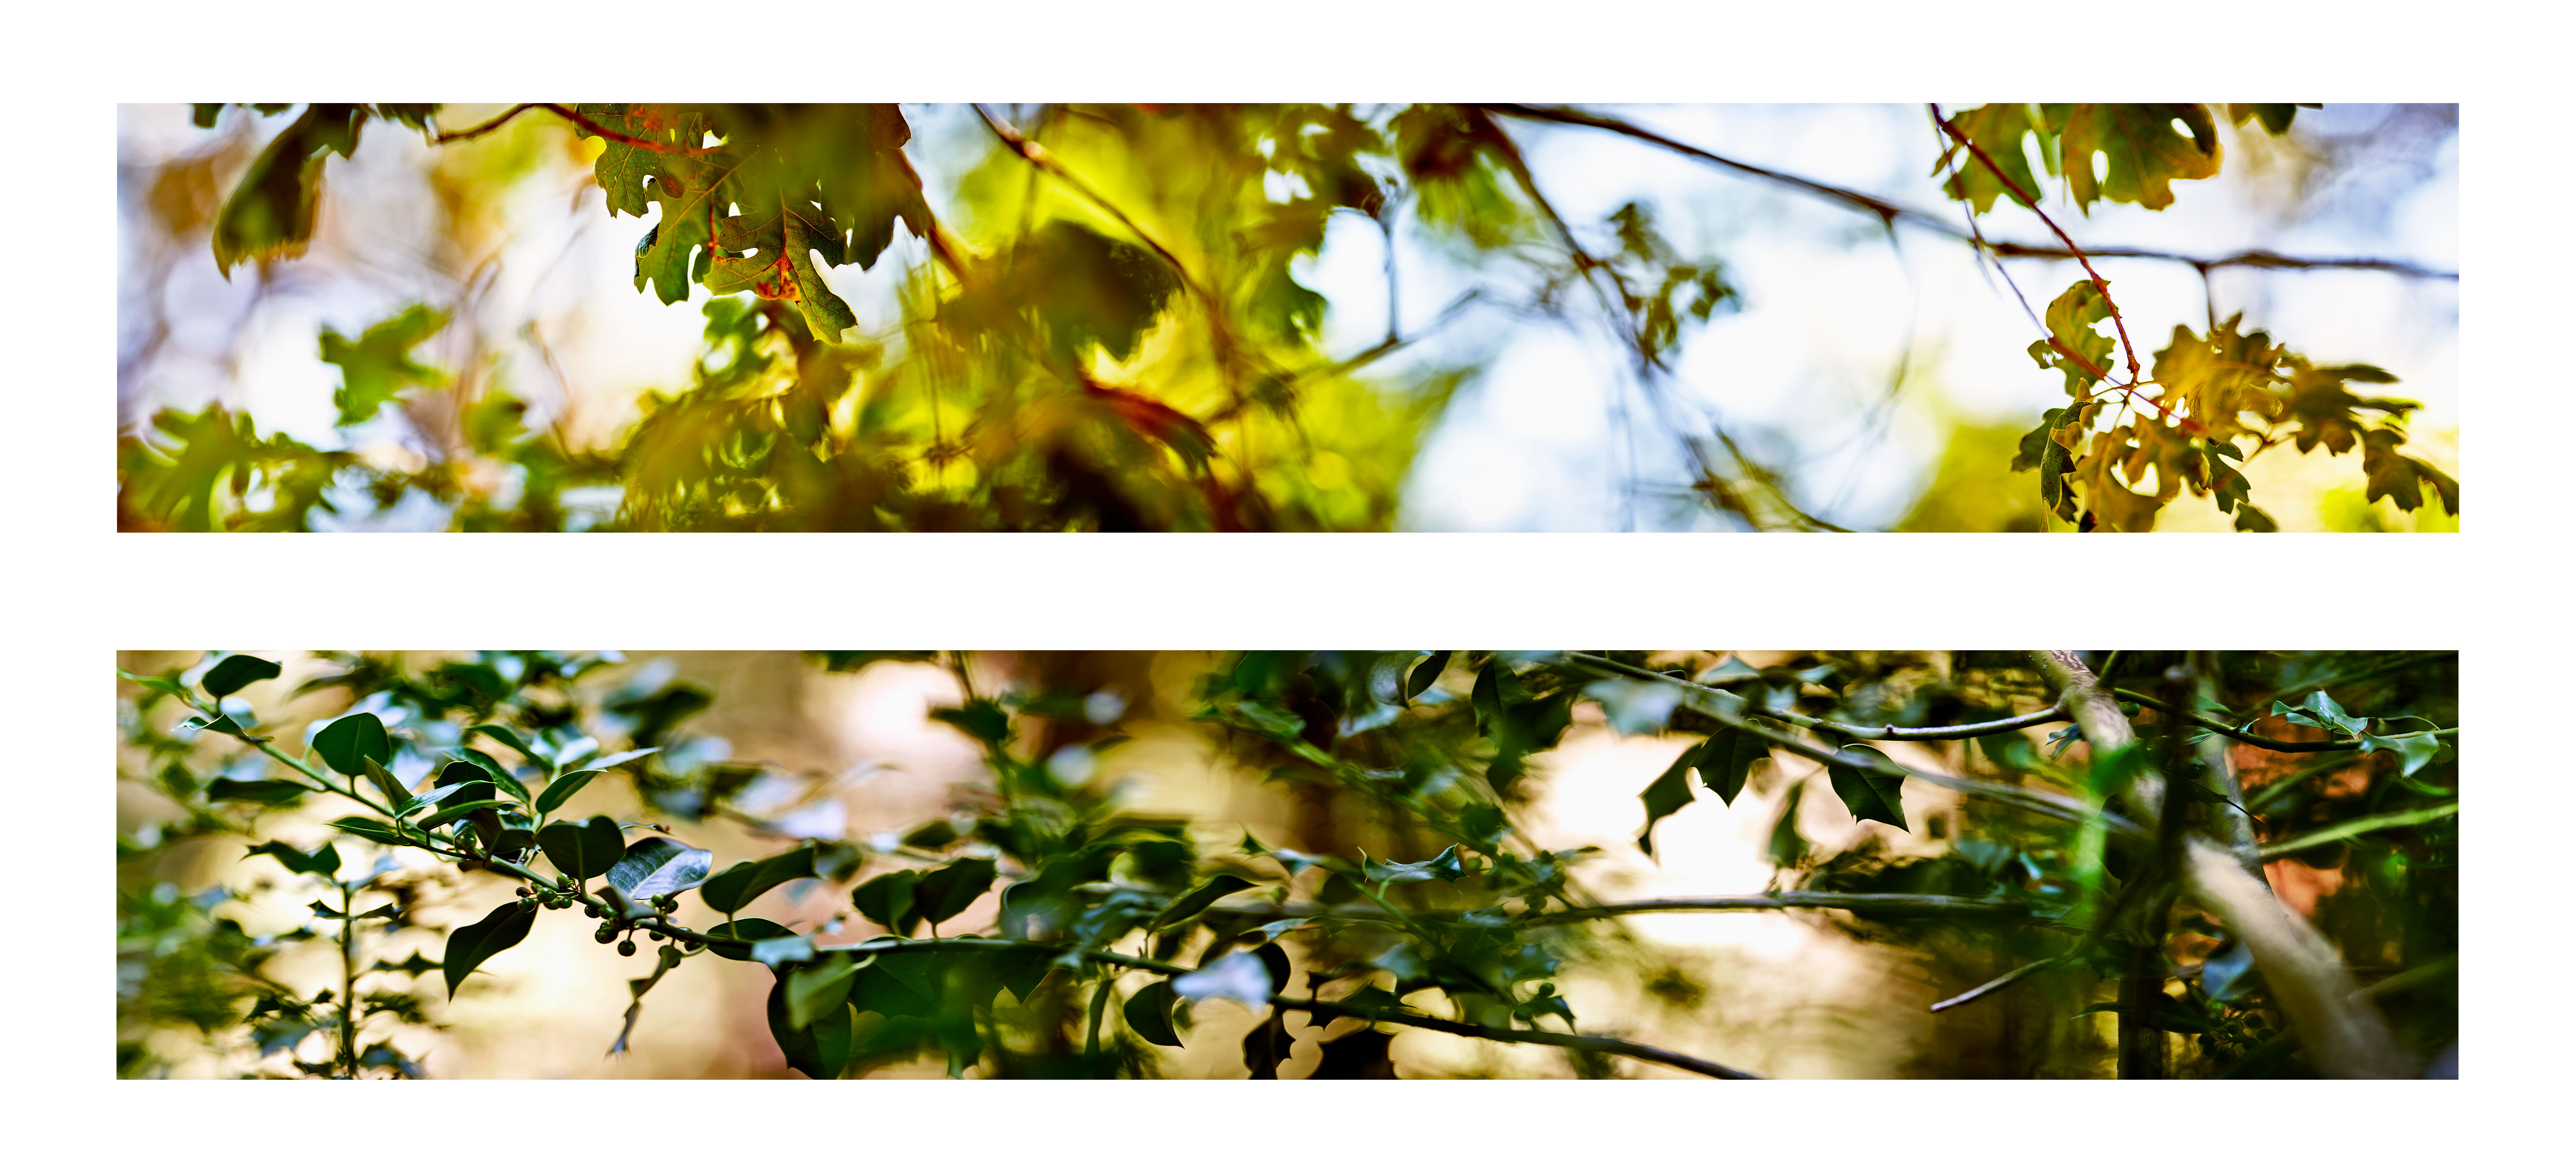 Ken Marchionno 2018 Crestline Oak and Crestline Holly / Archival ultrachrome print each 2' x 10'